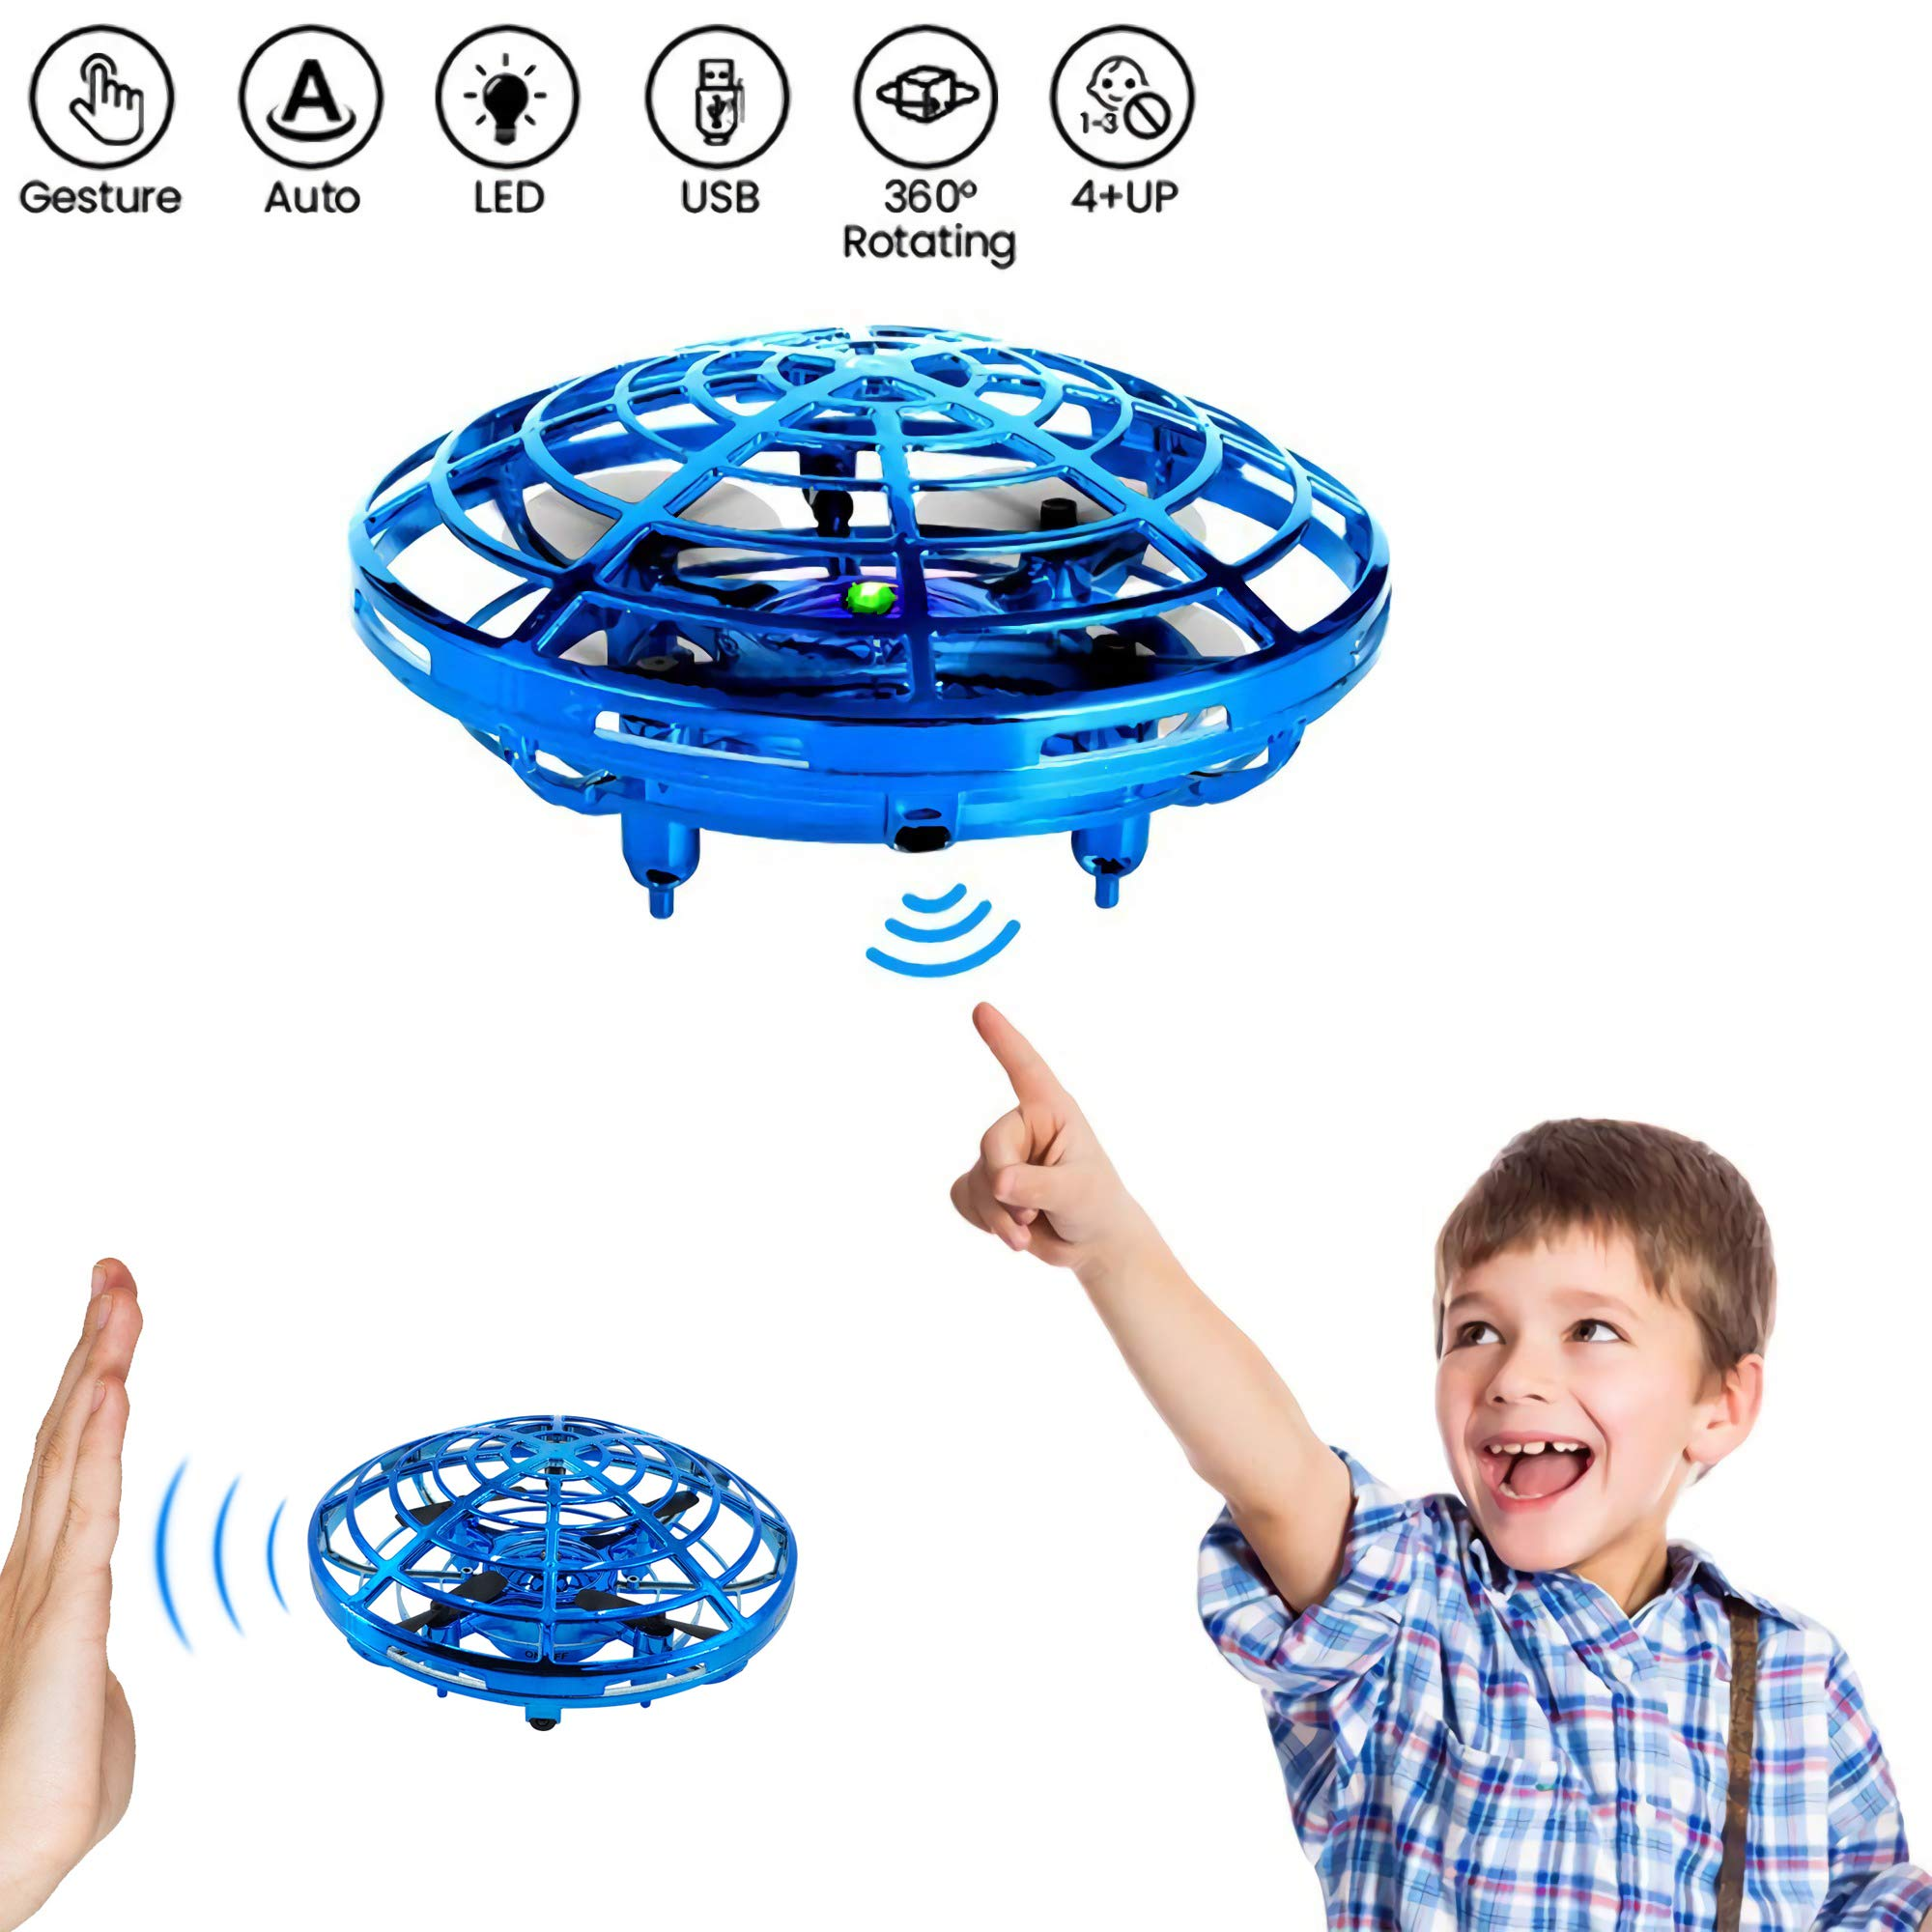 Bix Flying Toys Drone, Hand-Operated Flying Ball, Interactive Infrared Induction Helicopter Ball 360° Rotating Shinning LED Lights, Flying Toy Boys Girls Kids Holiday Birthday Gifts by Bix